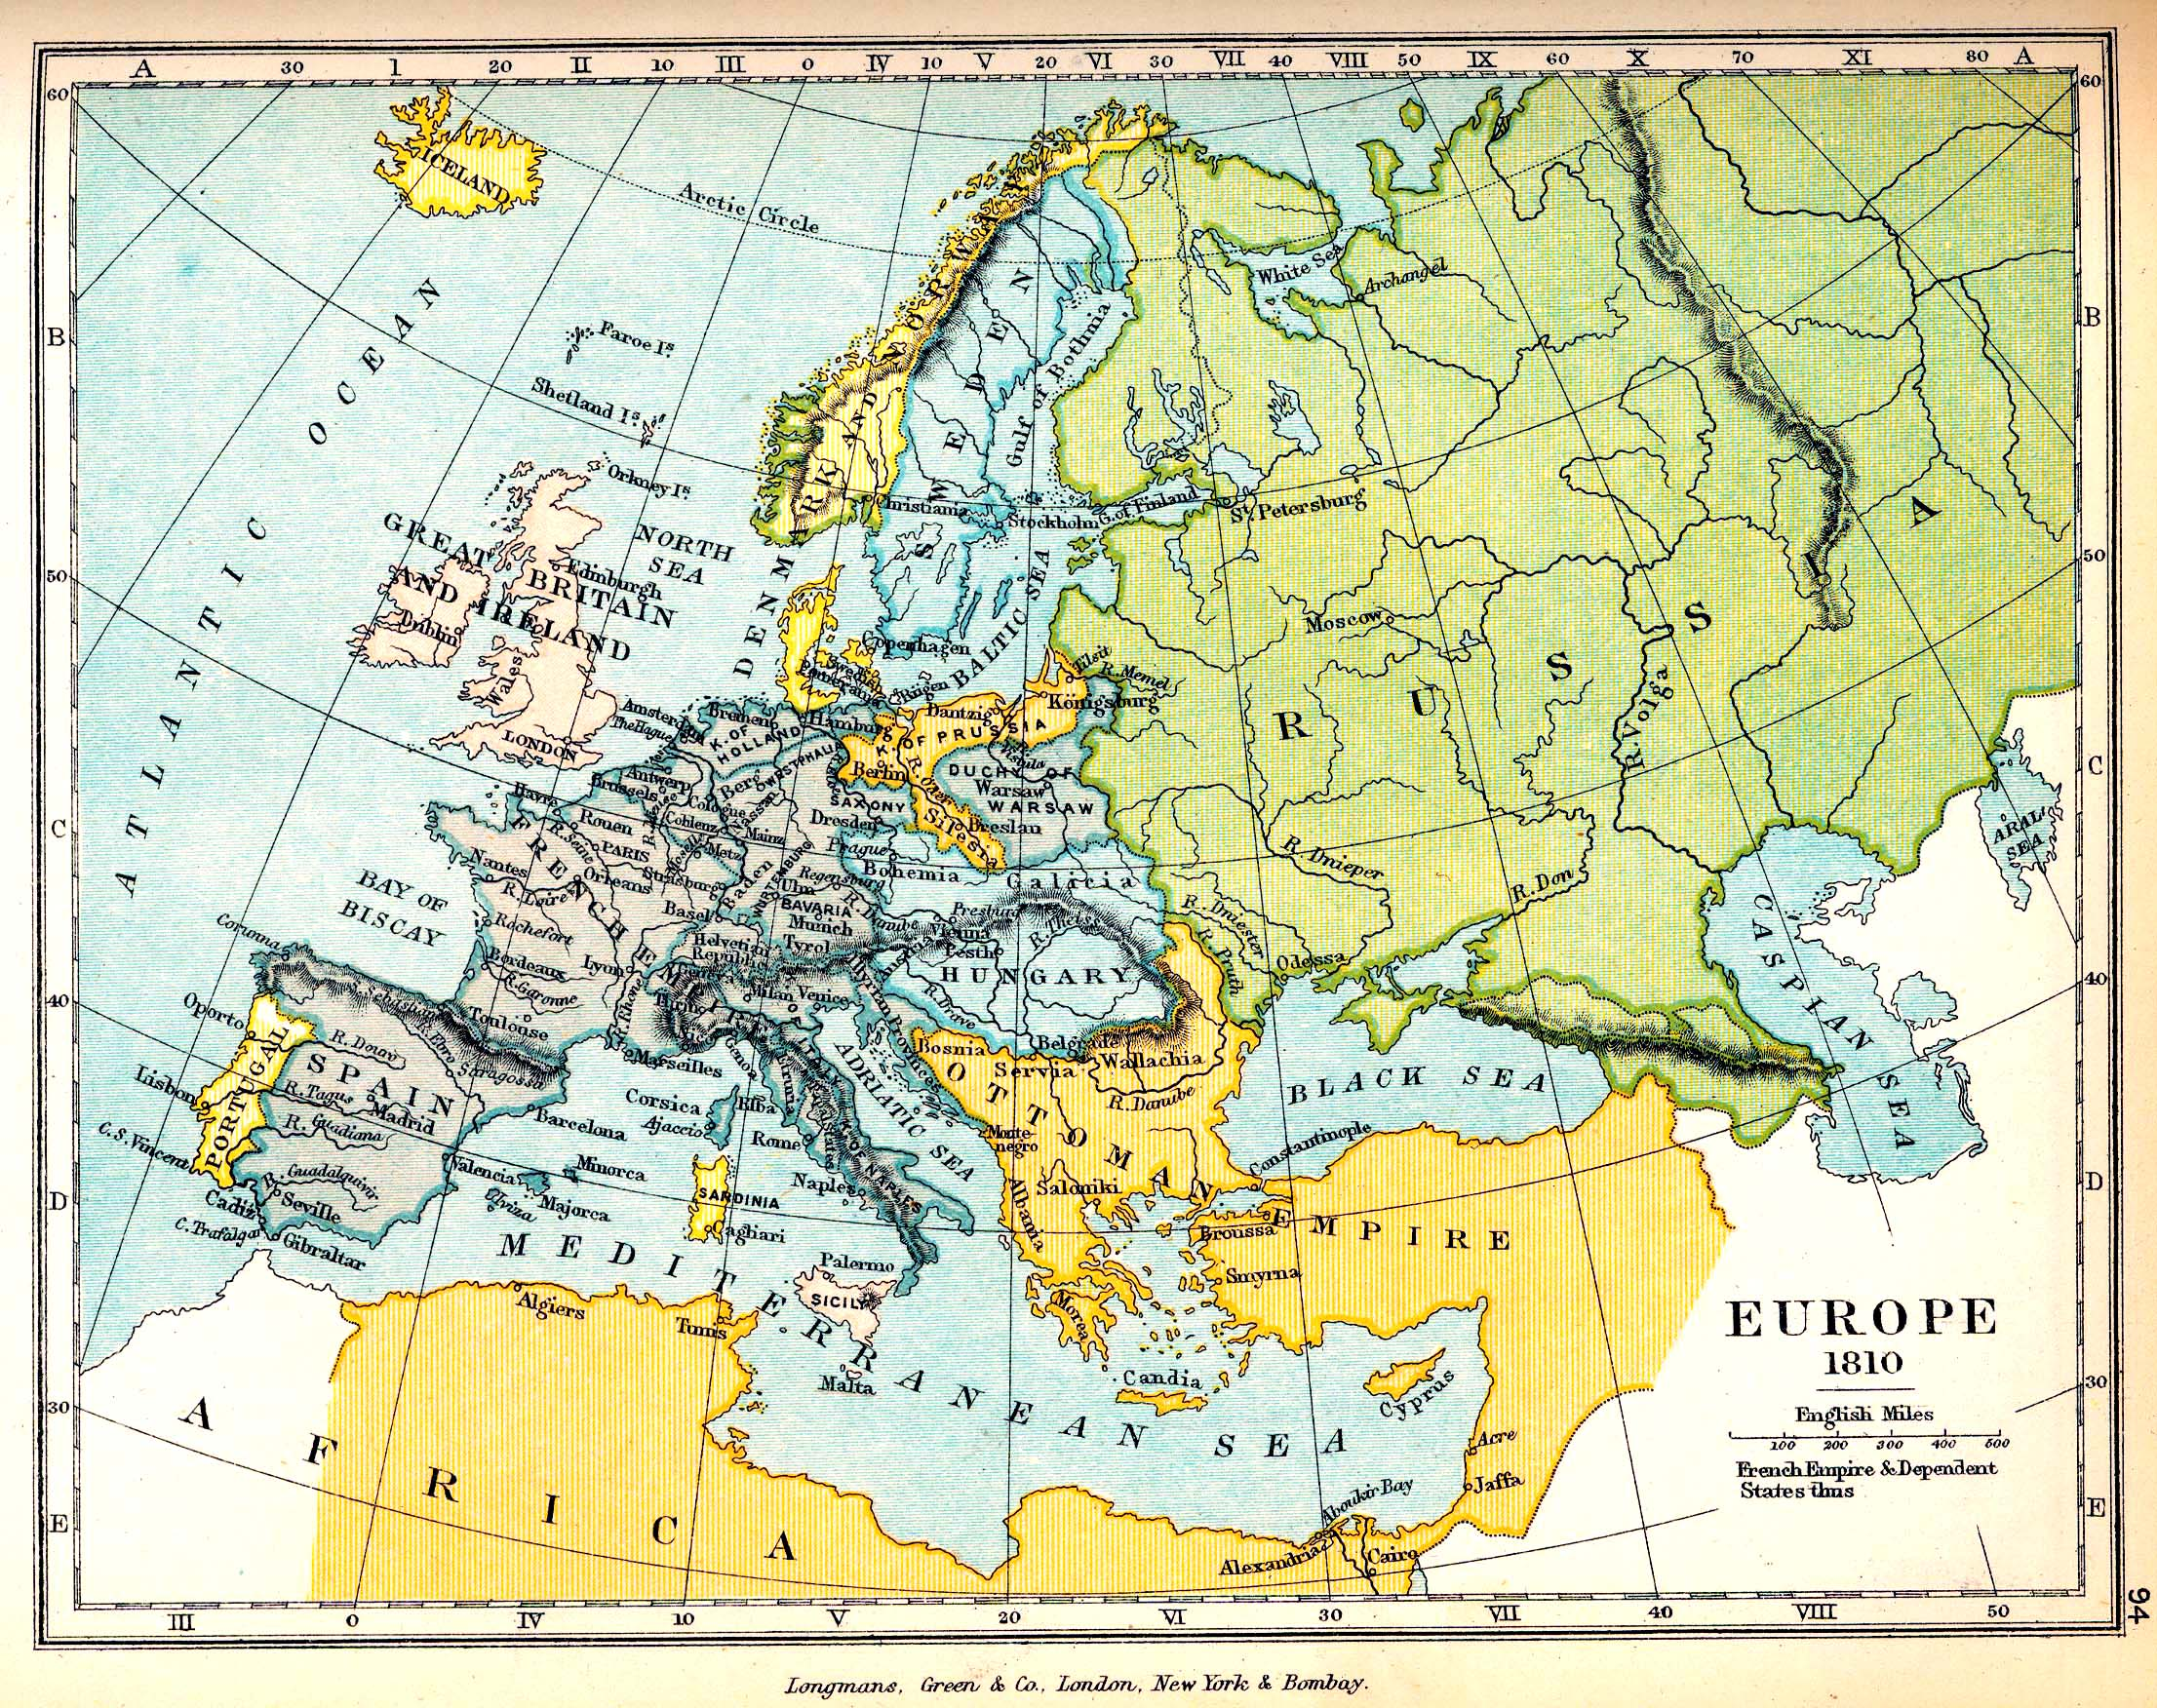 Map of Europe in 1810: The French Empire and Dependent States